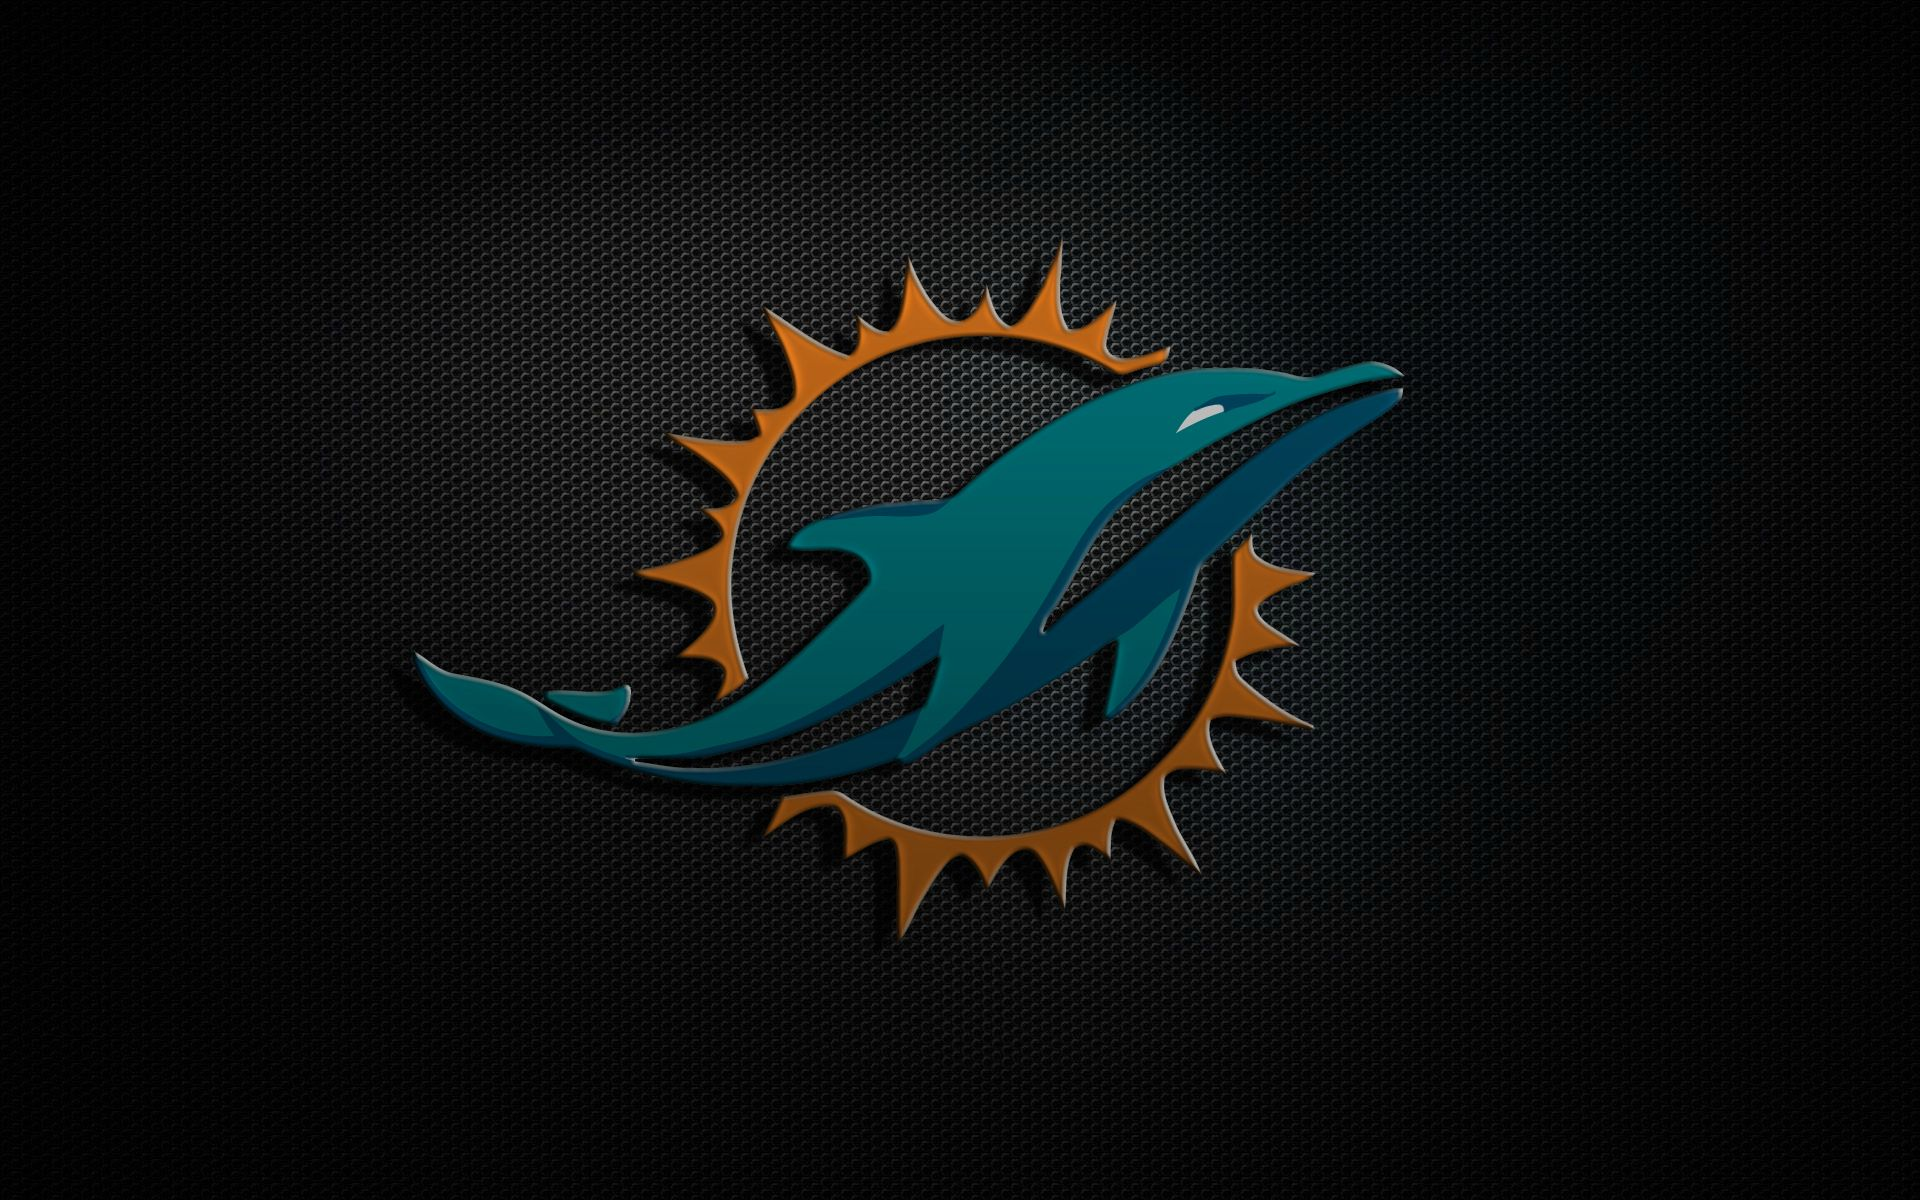 MIAMI DOLPHINS nfl football eq wallpaper 1920x1200 154768 1920x1200